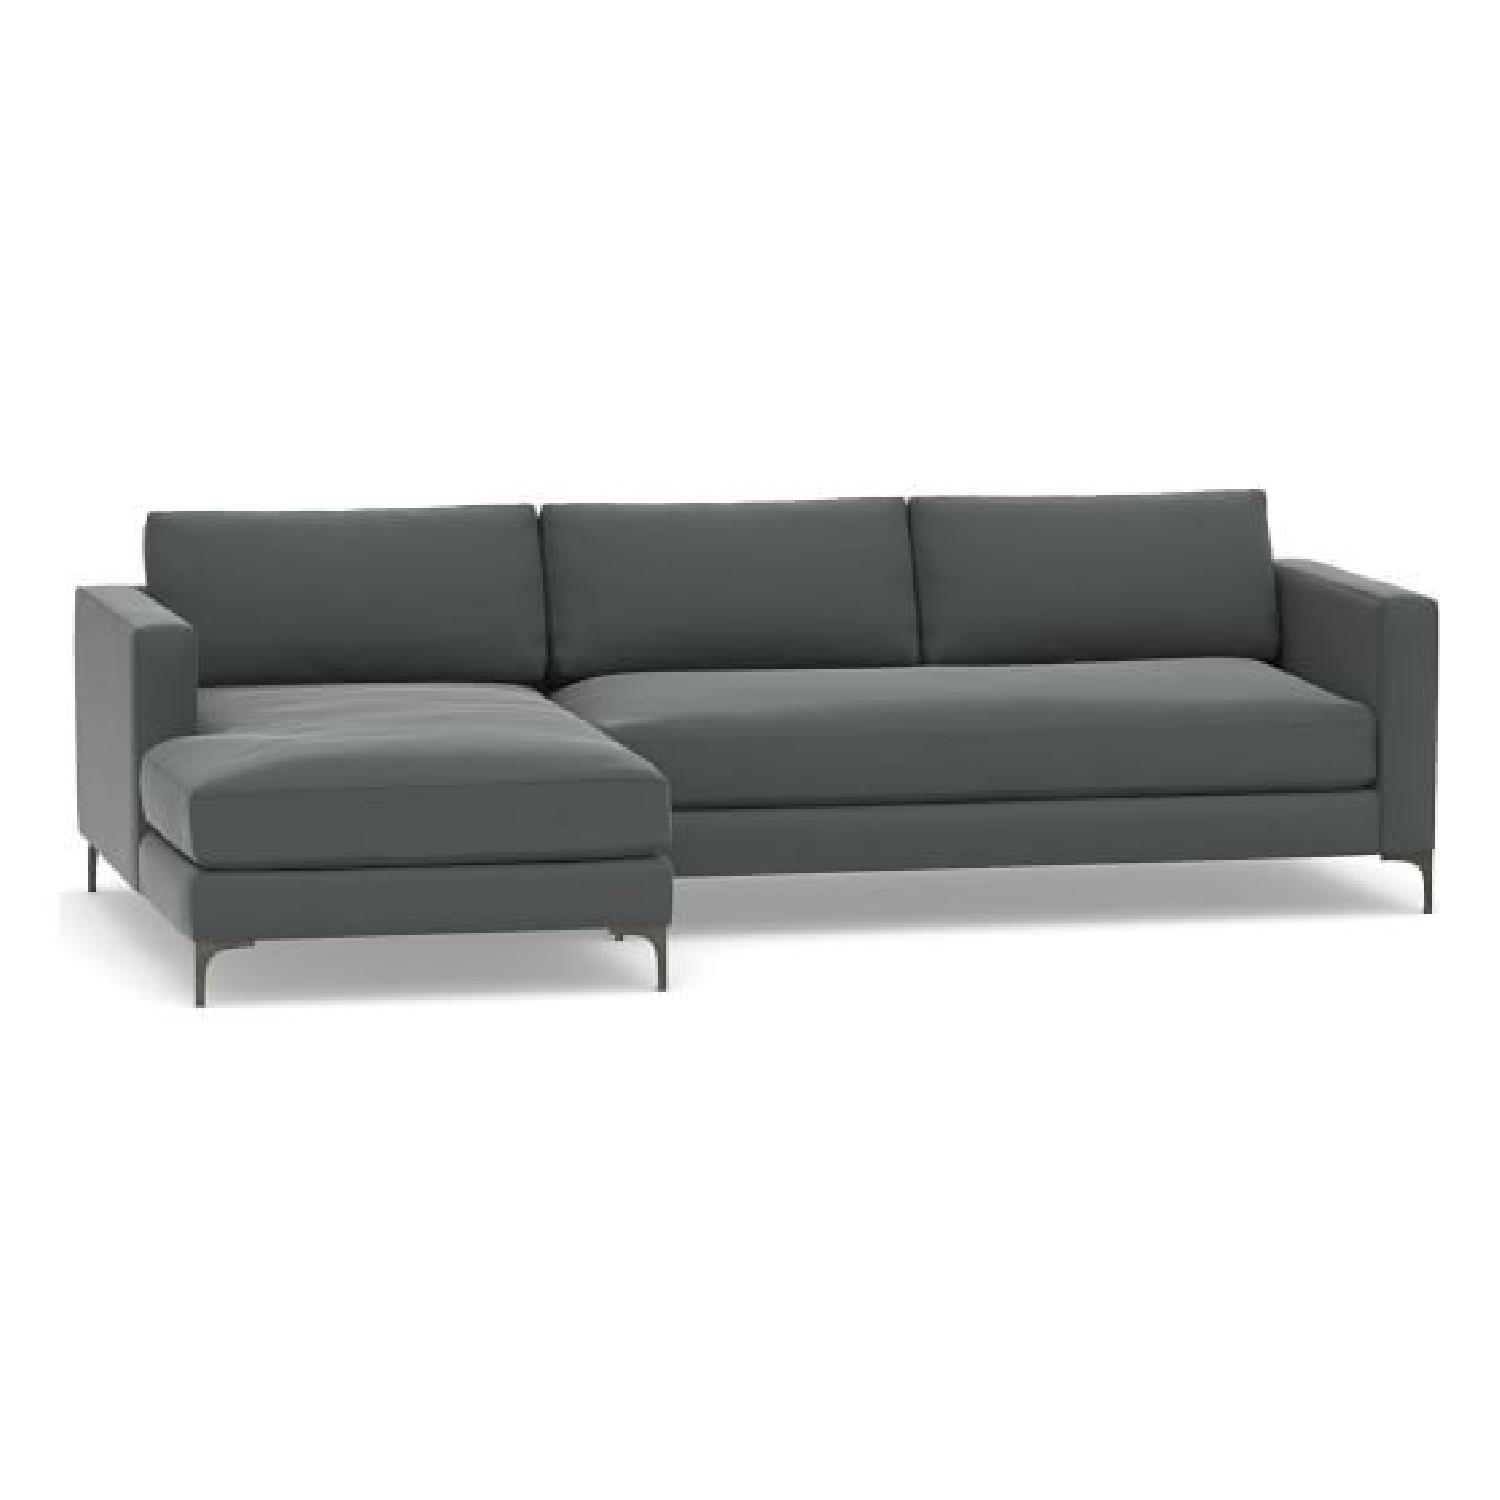 Pottery Barn Jake Upholstered Right Chaise Sectional Sofa ...